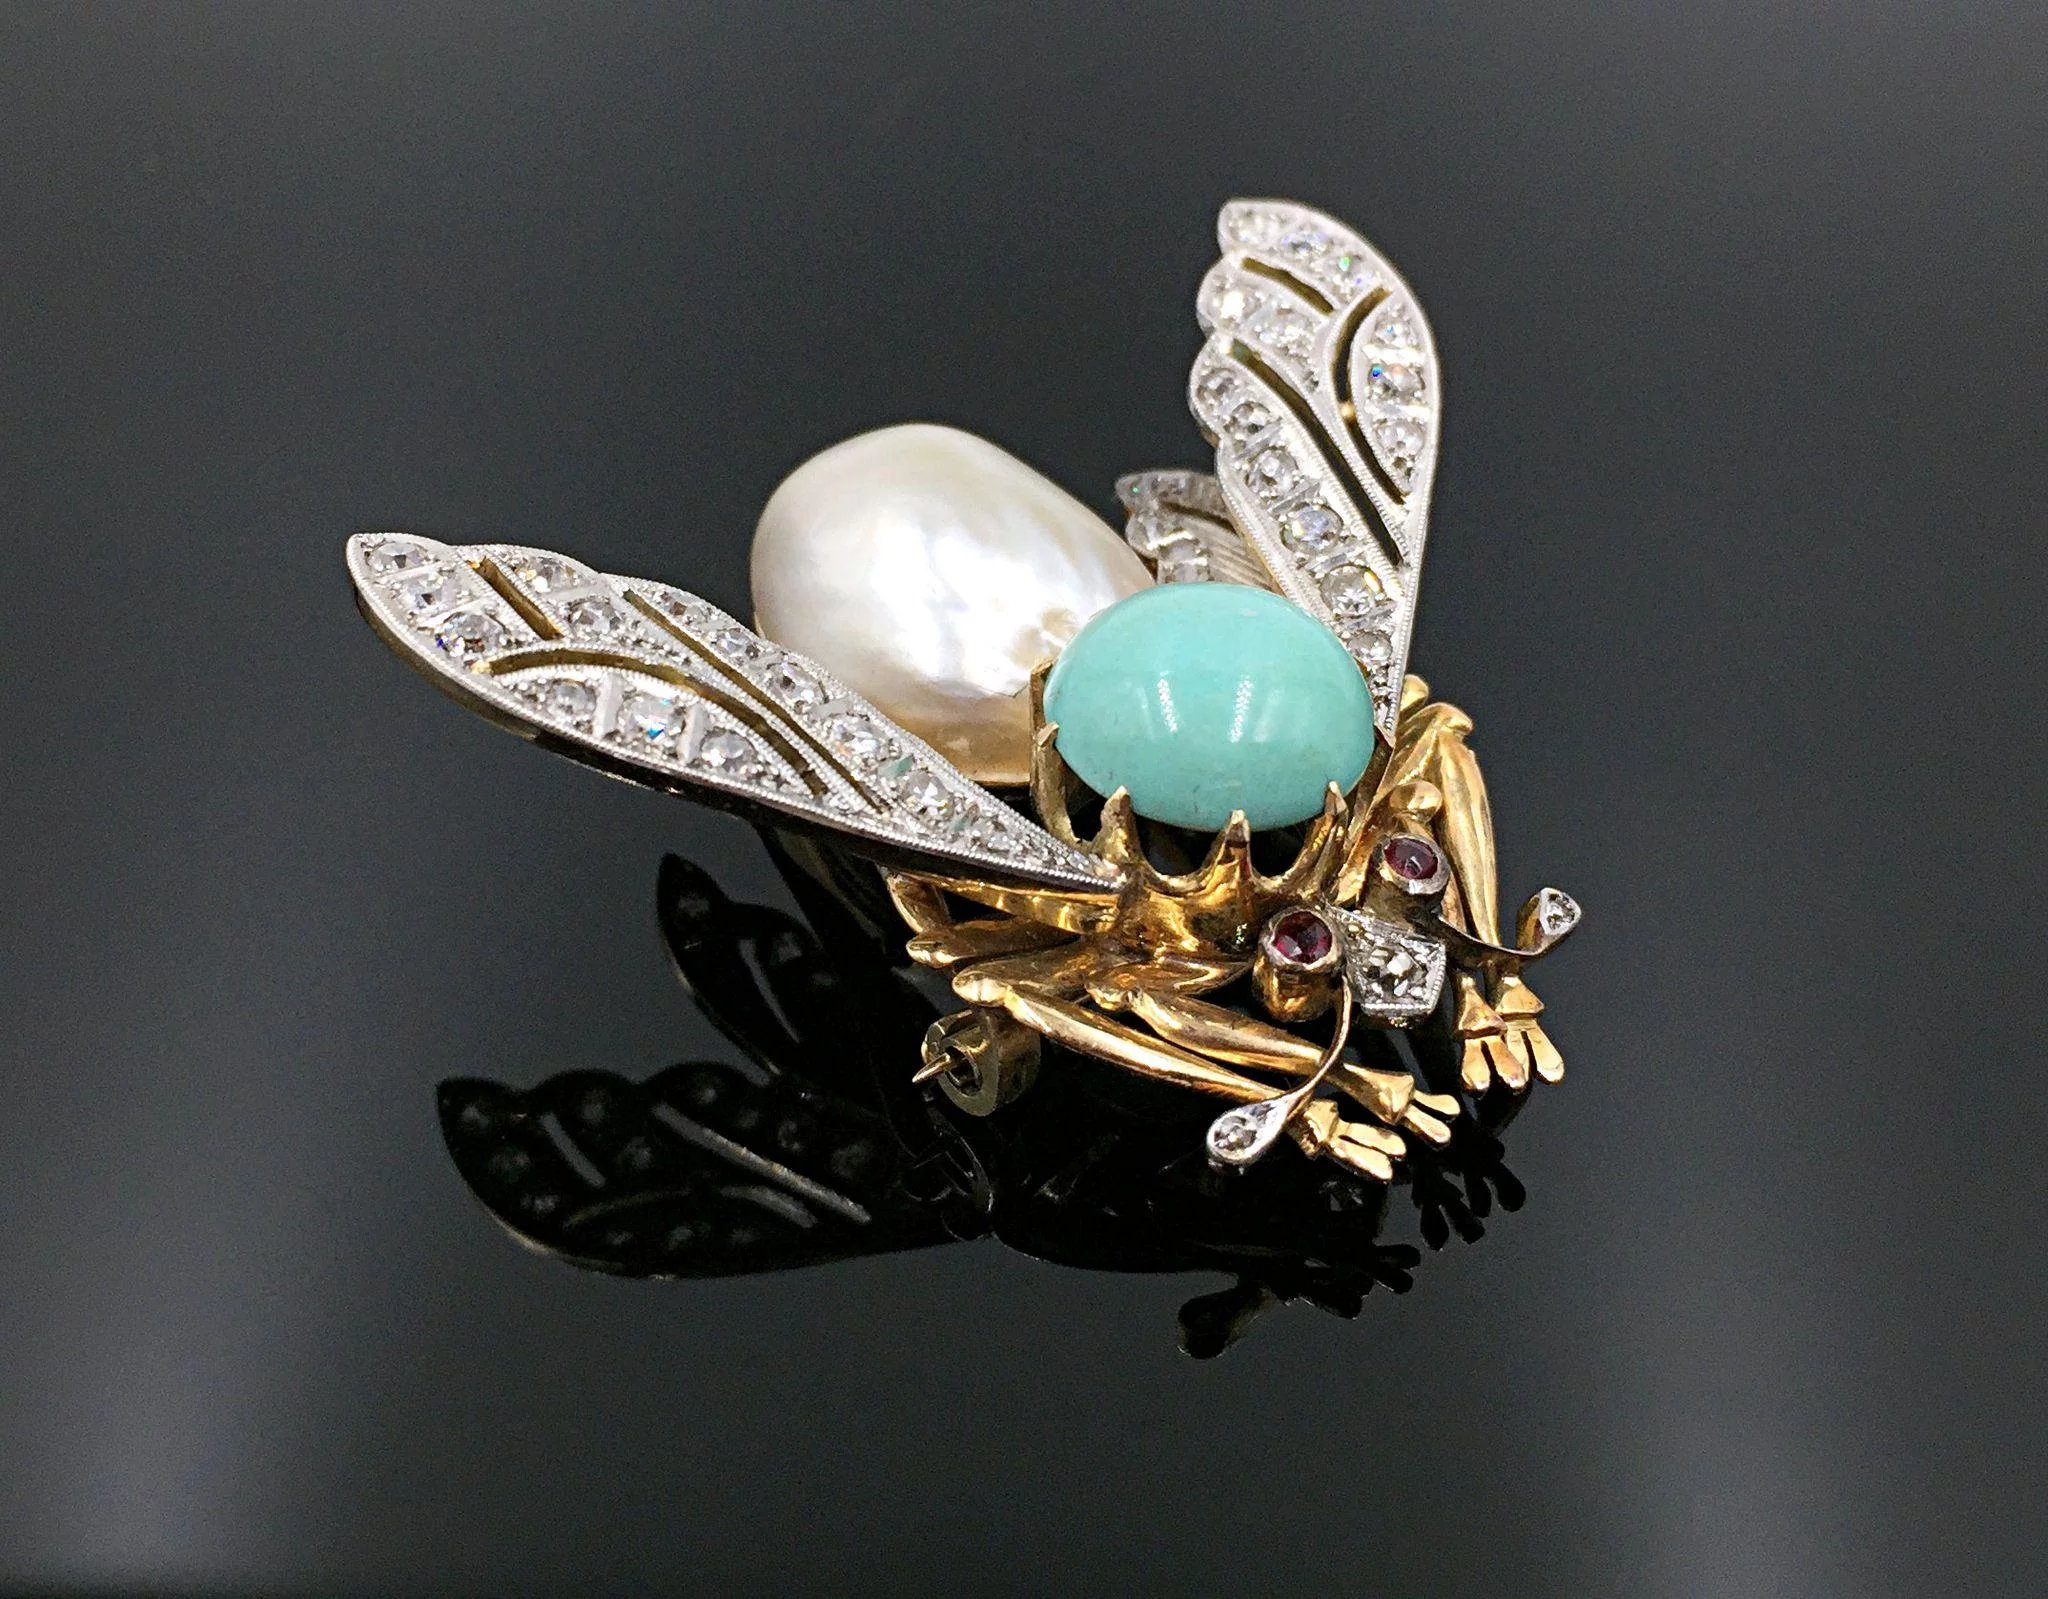 ring diamond white item rare beauty in turquoise and expand sleeping click gold full to